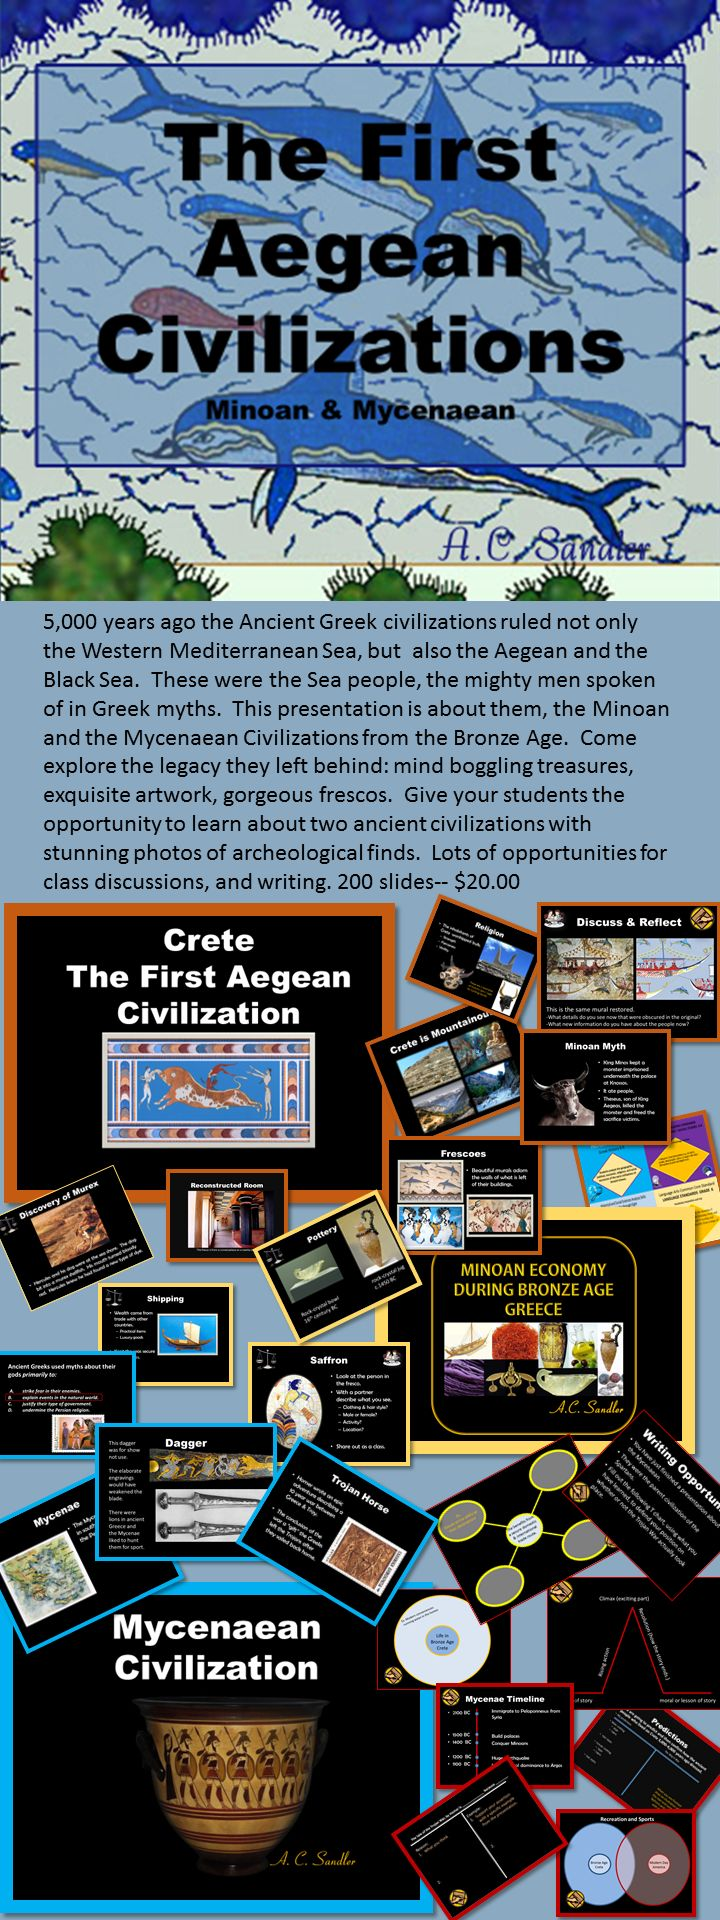 Ancient Greece: THE MINOAN AND MYCENAEAN CIVILIZATIONS Bundle  ANCIENT GREECE: The Minoan and Mycenaea Civilizations PowerPoint Shrouded in myth and obscured by time, they're known for their mystery. Their history gleaned by archeologists from ruined architecture, fragmented frescos, and shattered artifacts has intrigued and inspired historians around the world. Explore this lost civilizations. It is a presentation that will definitely have your students talking and fully engaged the entire time. 200 slides $20.00